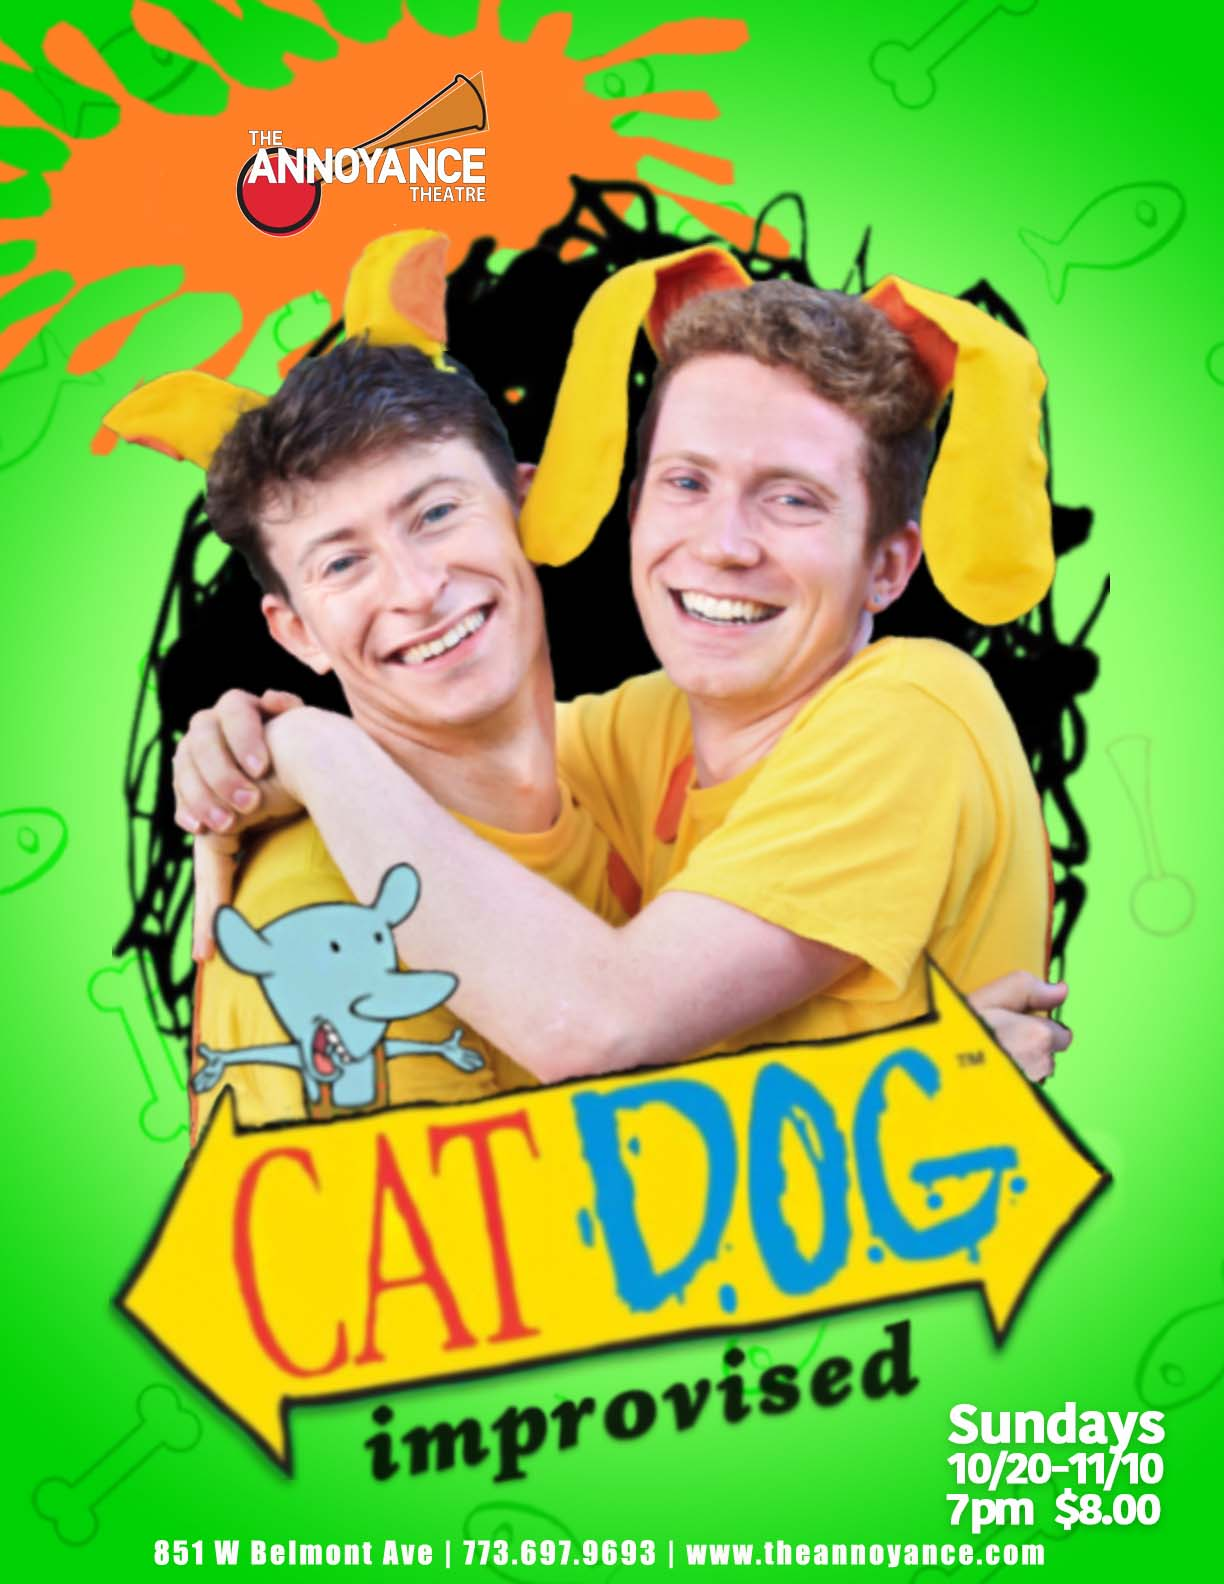 Improvised CatDog